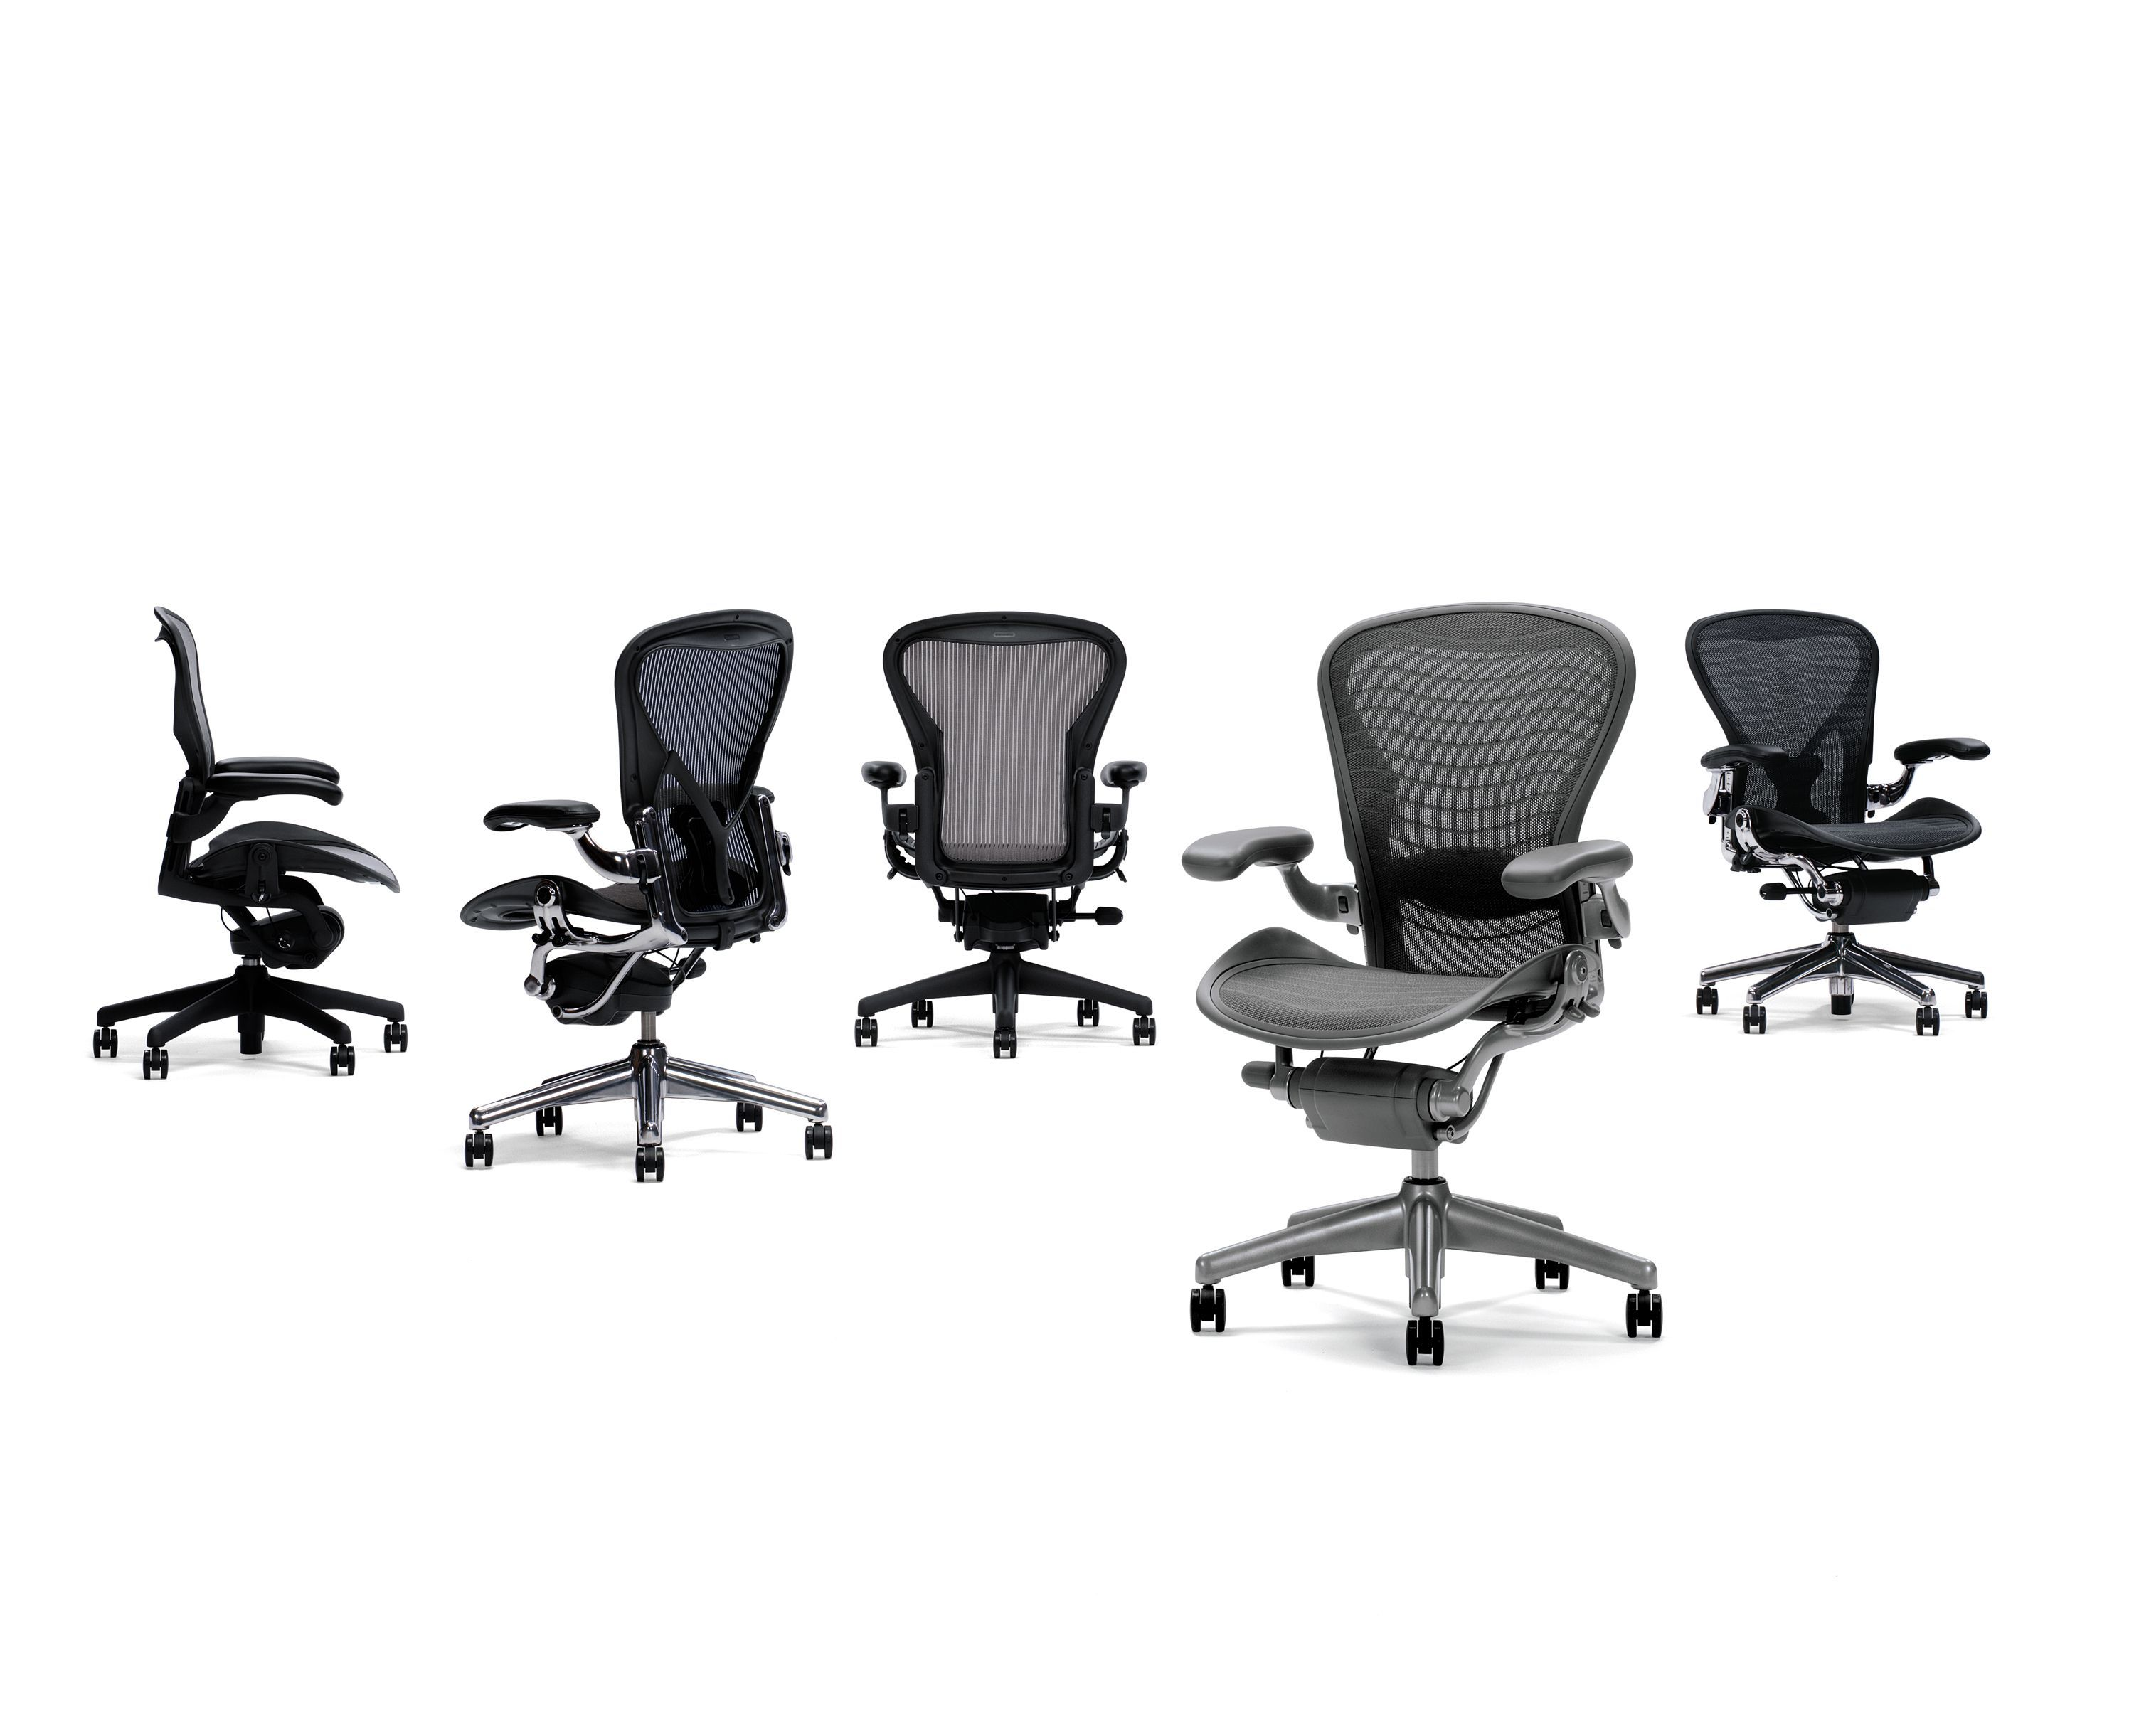 Herman Miller's Aeron Chair contains up to 55 recycled